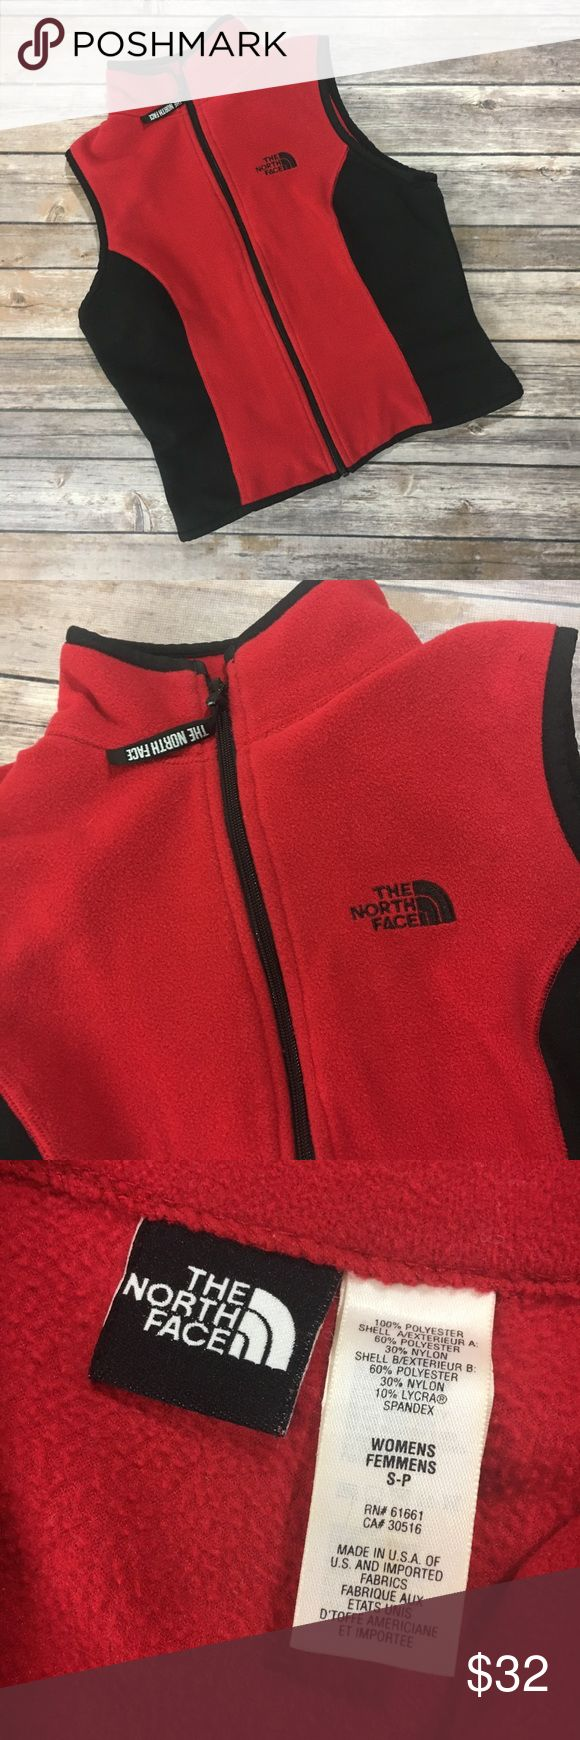 """{The North Face} Vintage Fleece Vest Sz S {The North Face} Vintage Fleece Vest Sz Small Red & Black back pocket *runs small please see measurements 🔸armpit to armpit 17""""🔸vertical length 18""""🔸Great Pre-Loved Condition🔸Some Wear & puking shown in photos 🔸questions welcomed 🔸reasonable offers always accepted 🔸as seen in pictures 🔸thank you for shopping with thrifty_nerd 🔸SKU C2 The North Face Jackets & Coats Vests"""